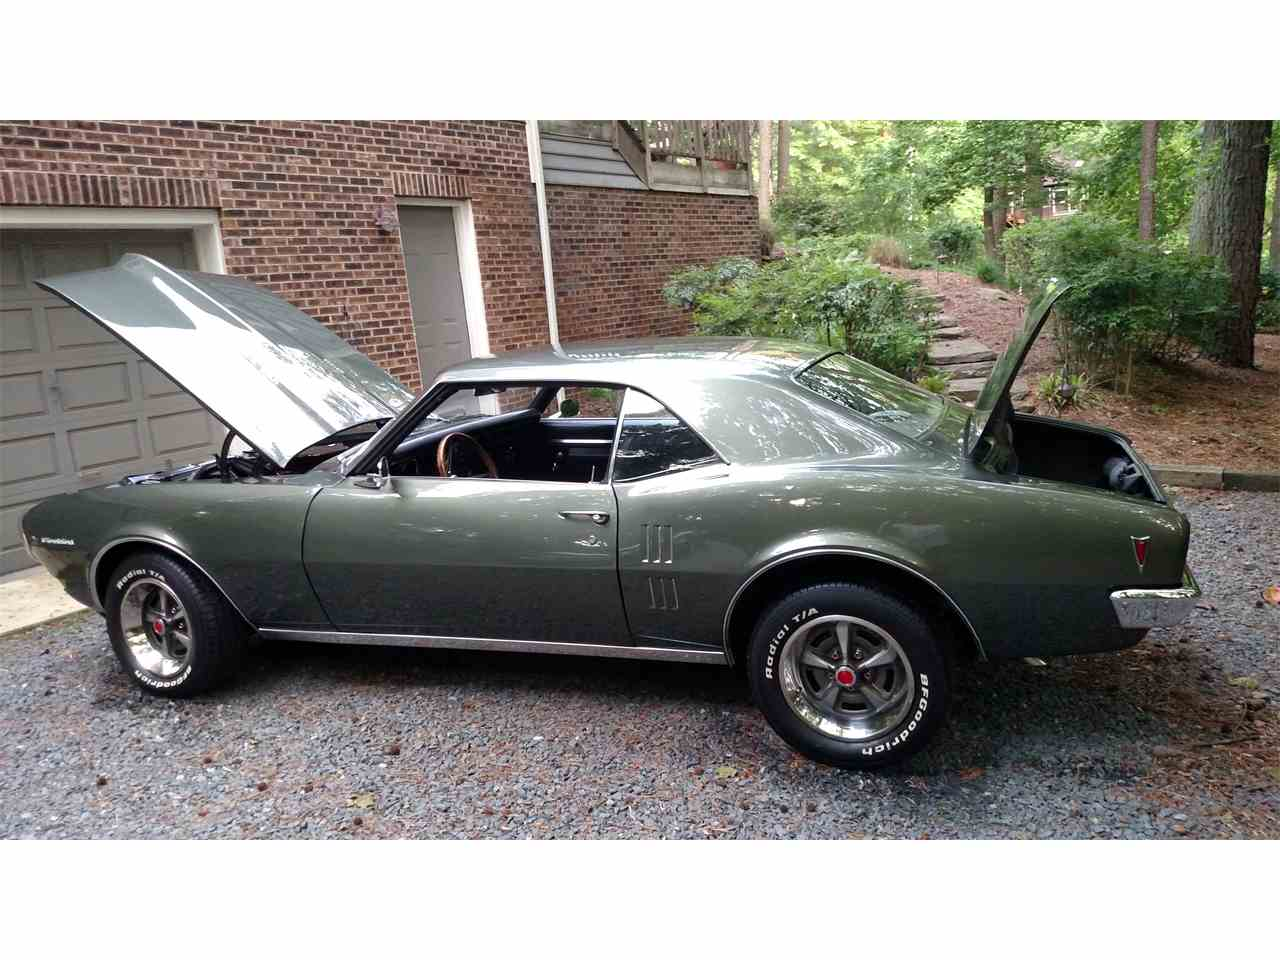 Large Picture of '68 Pontiac Firebird located in Lusby Maryland Offered by a Private Seller - NI9T